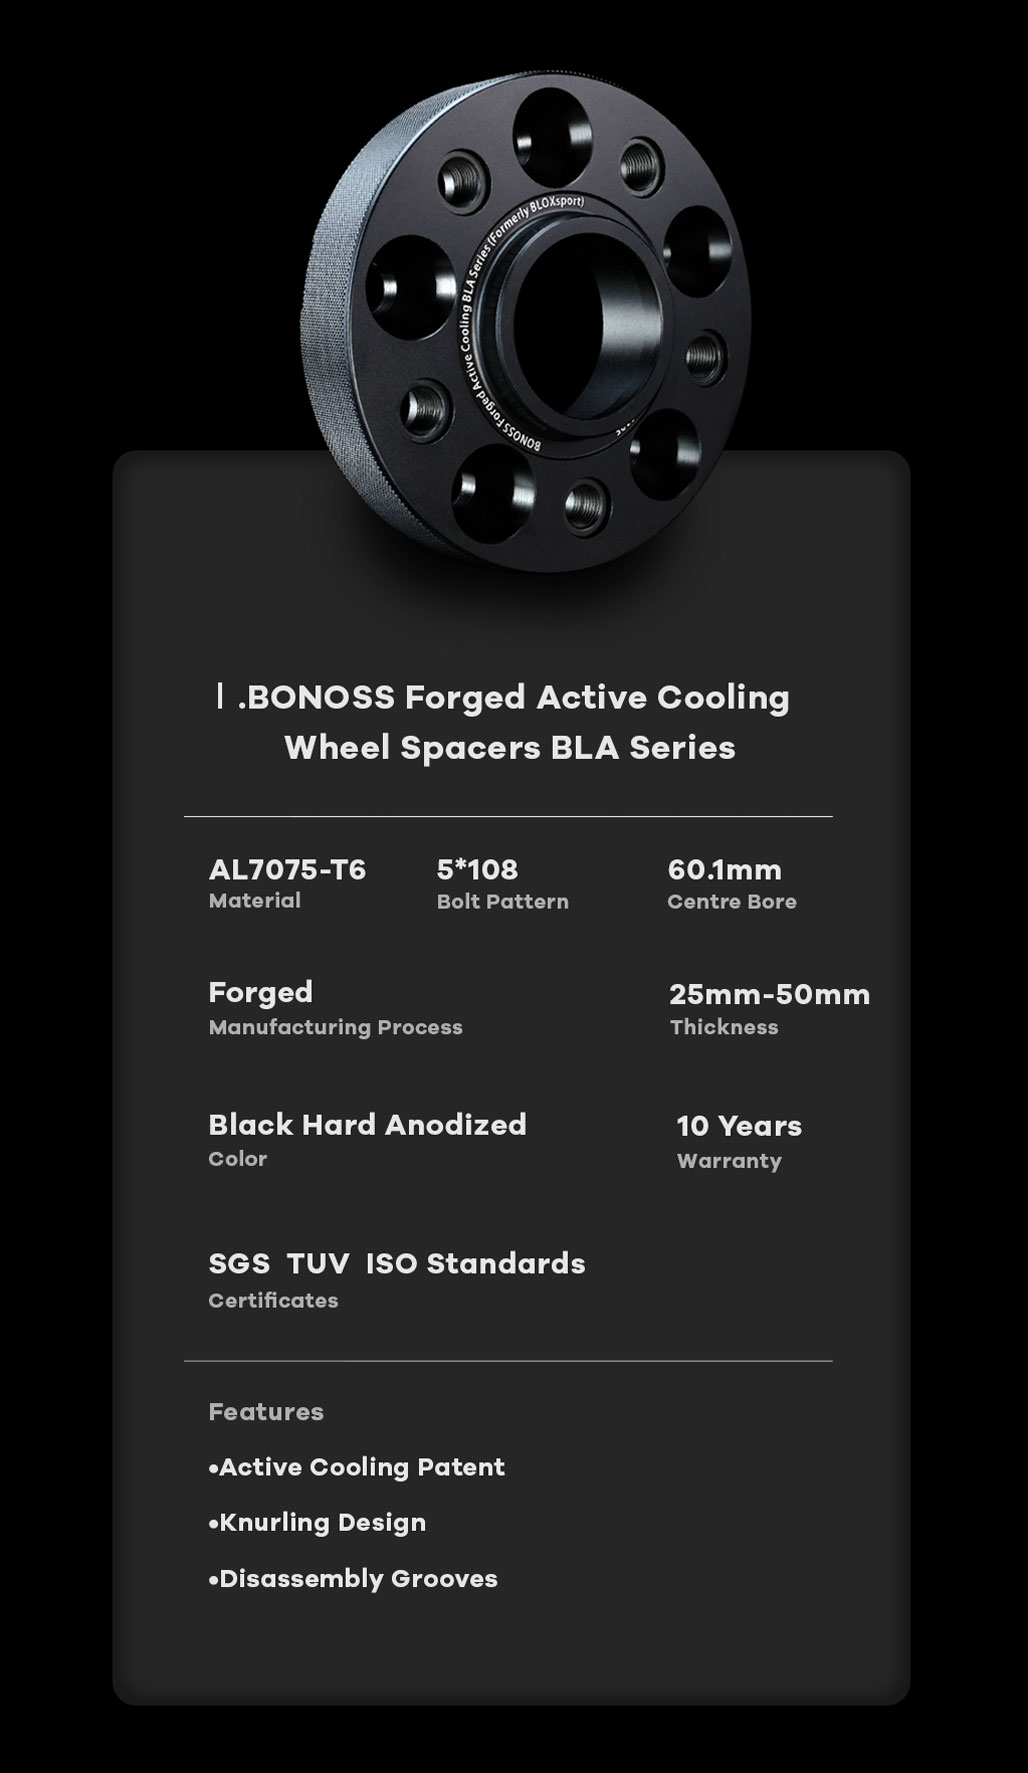 BONOSS Forged Active Cooling Hubcentric Wheel Spacers 5x108 Wheel Adapters 7075-T6 Aluminum CB60.1 Wheel Spacers